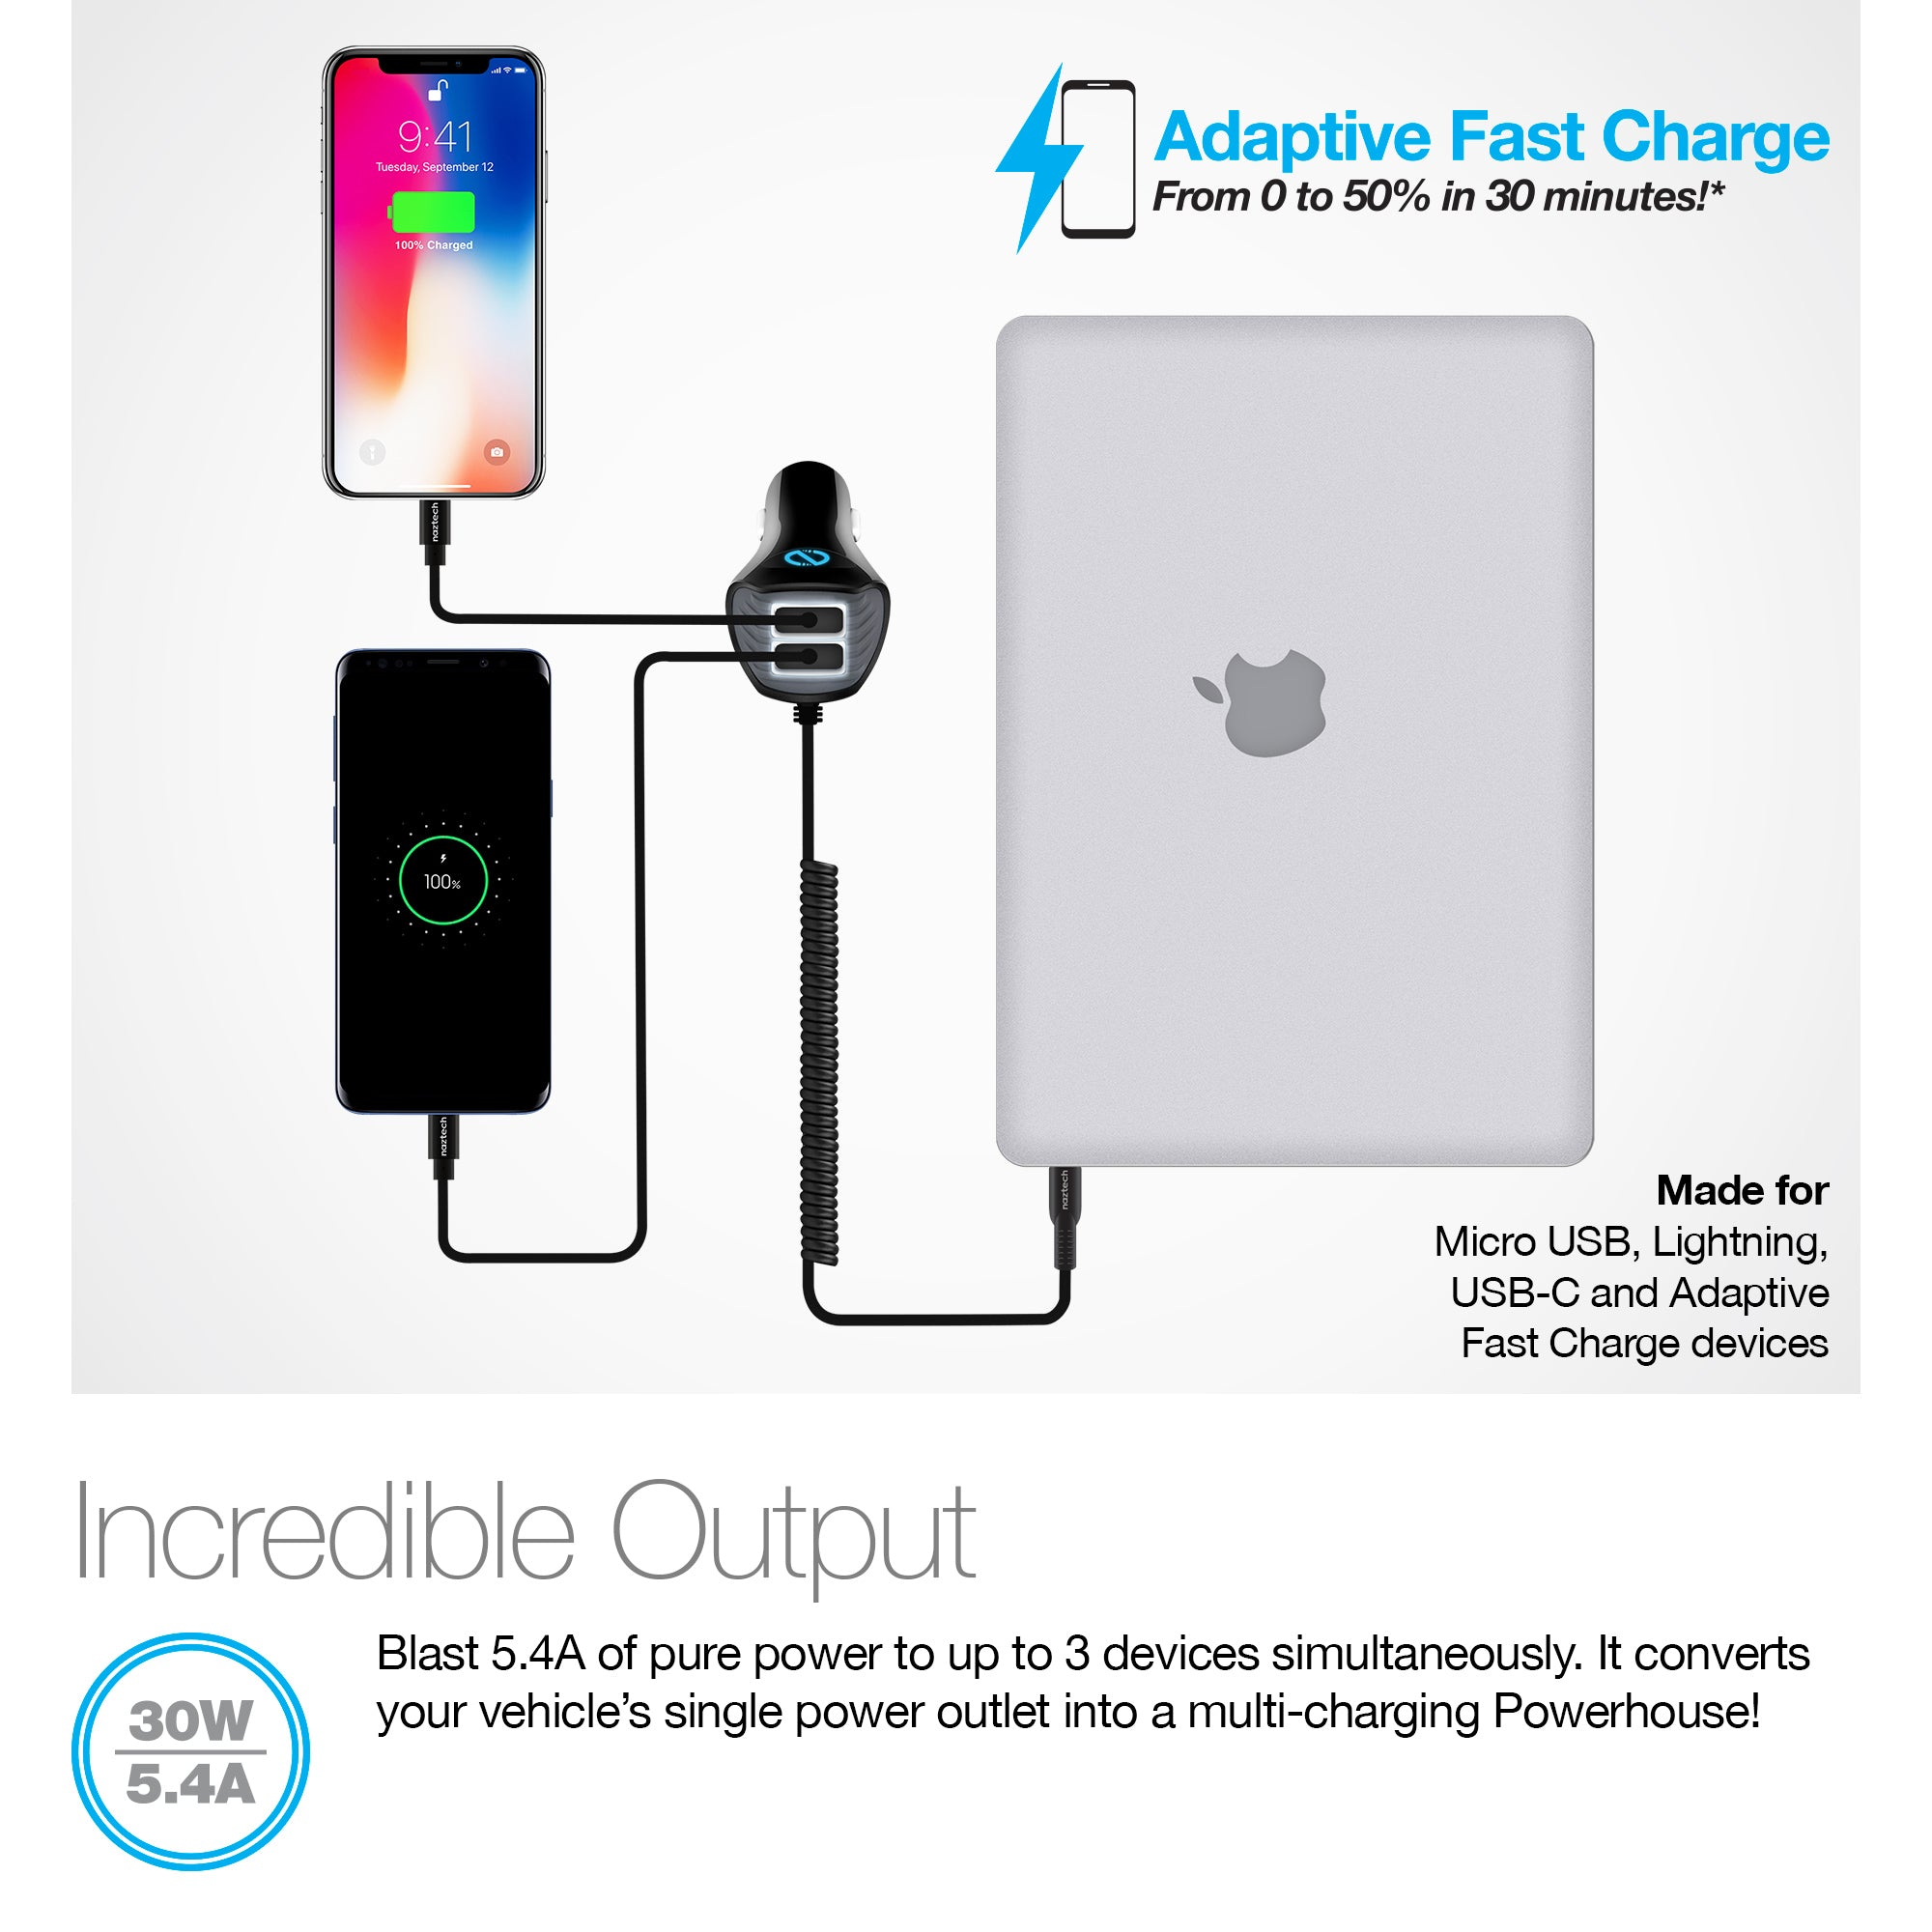 Corded TRiO USB-C Adaptive Fast Charger